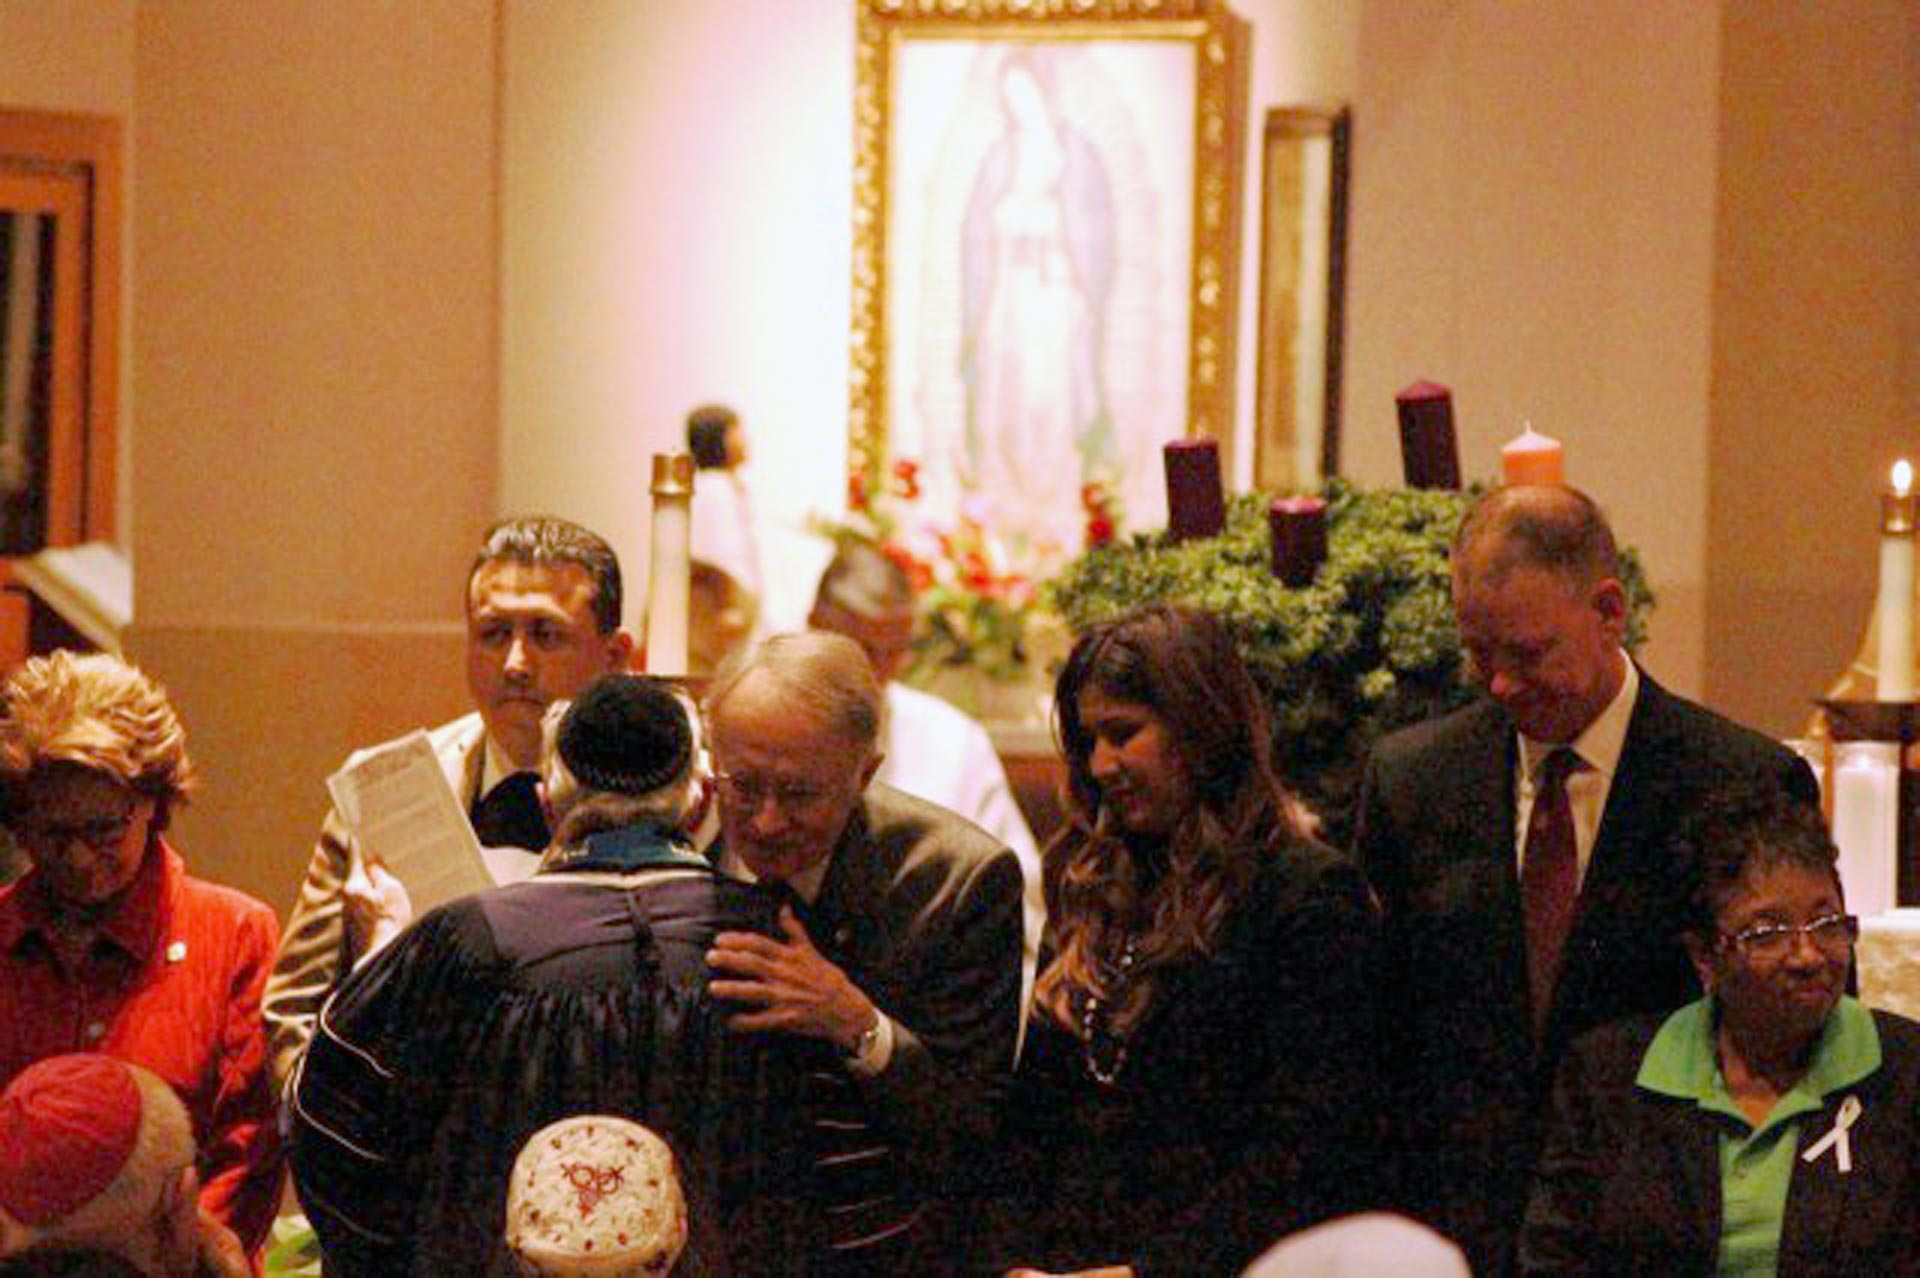 Hundreds of people gathered for an interfaith service at Our Lady of the Rosary Catholic Cathedral in San Bernardino on Wednesday night.